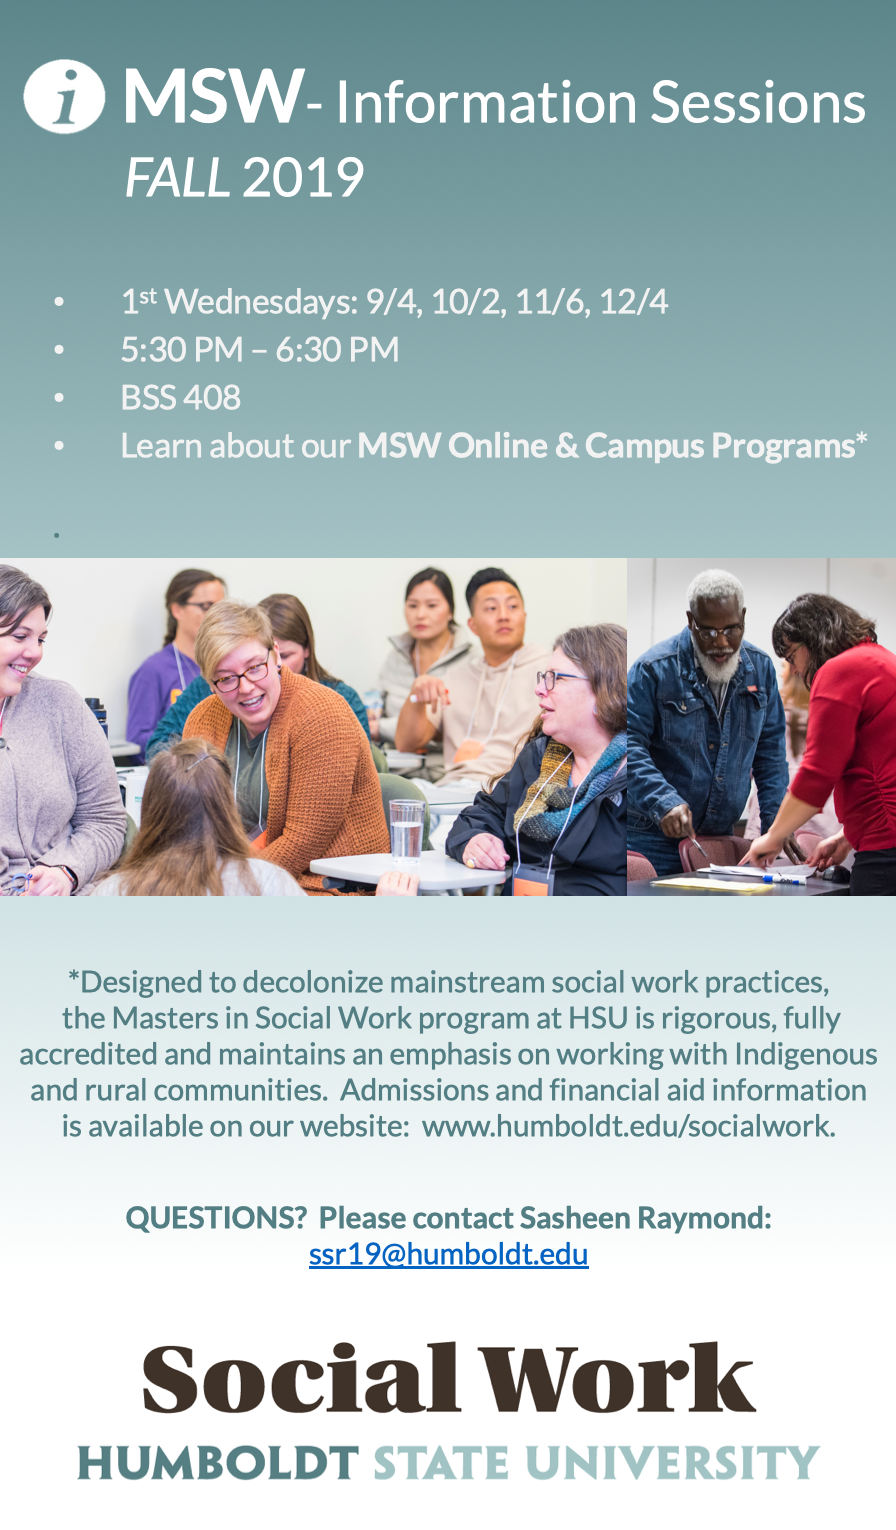 MSW Information Sessions - Fall 2019 - for Online & Campus Programs